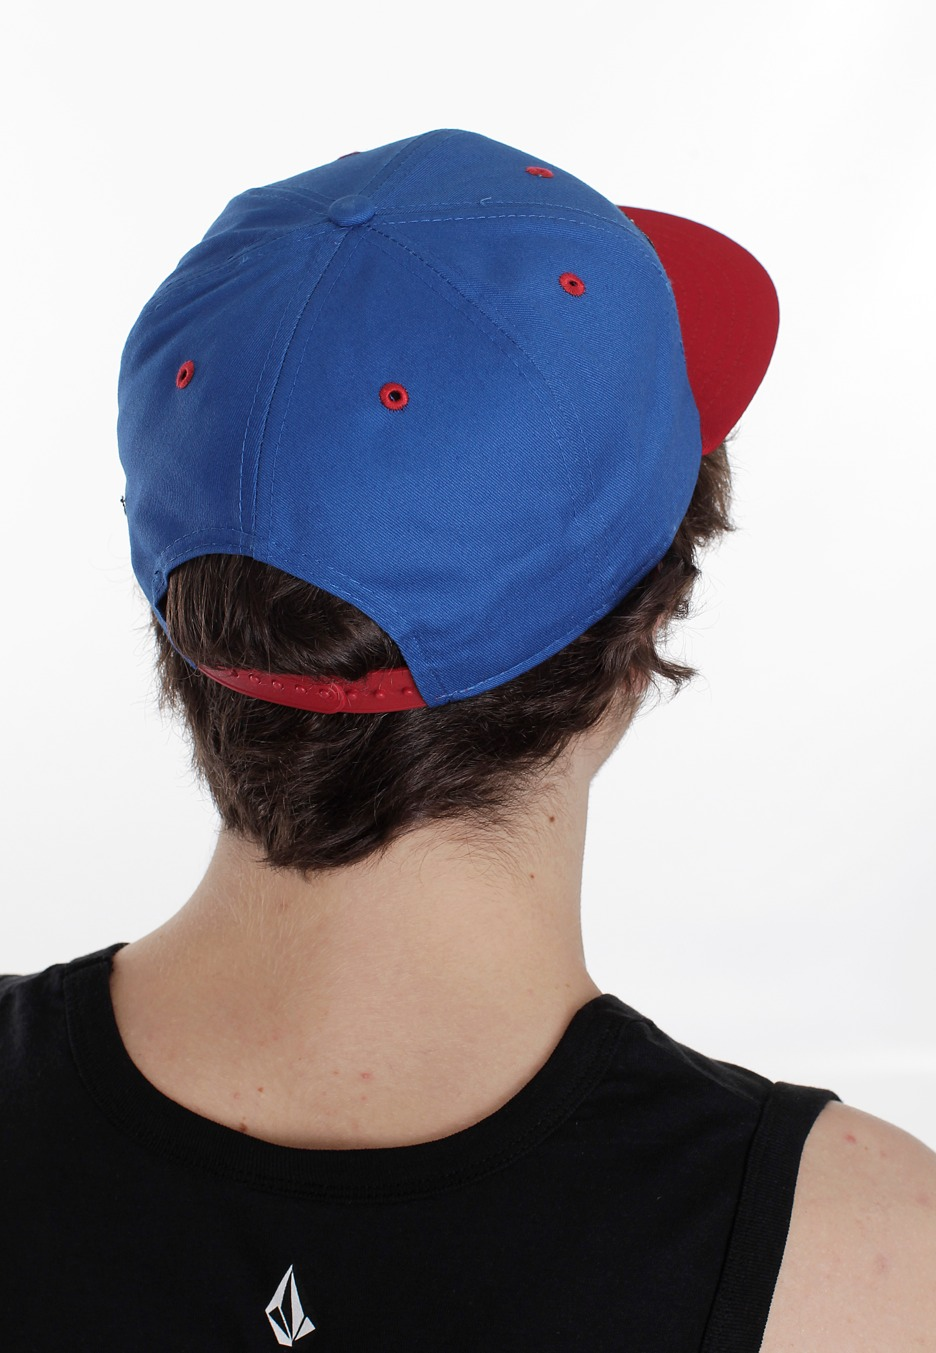 ... New Era - Comic Panel Captain America Blue/Red Snapback - Cap